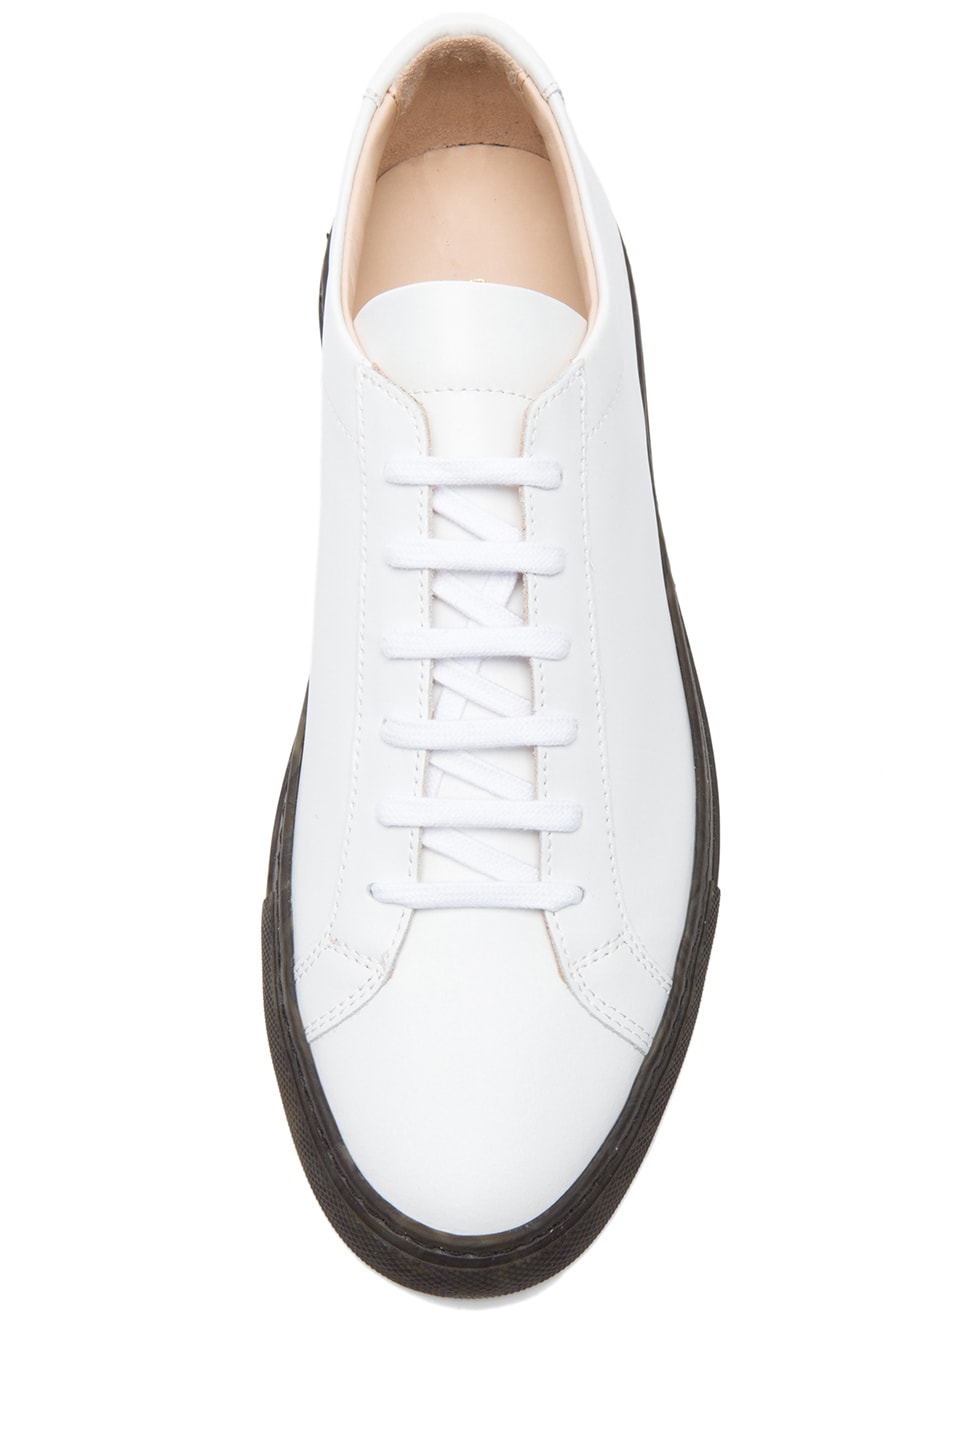 3df5bab1c83ff Image 4 of Common Projects Original Achilles Camouflage Leather Pack  Sneakers in White